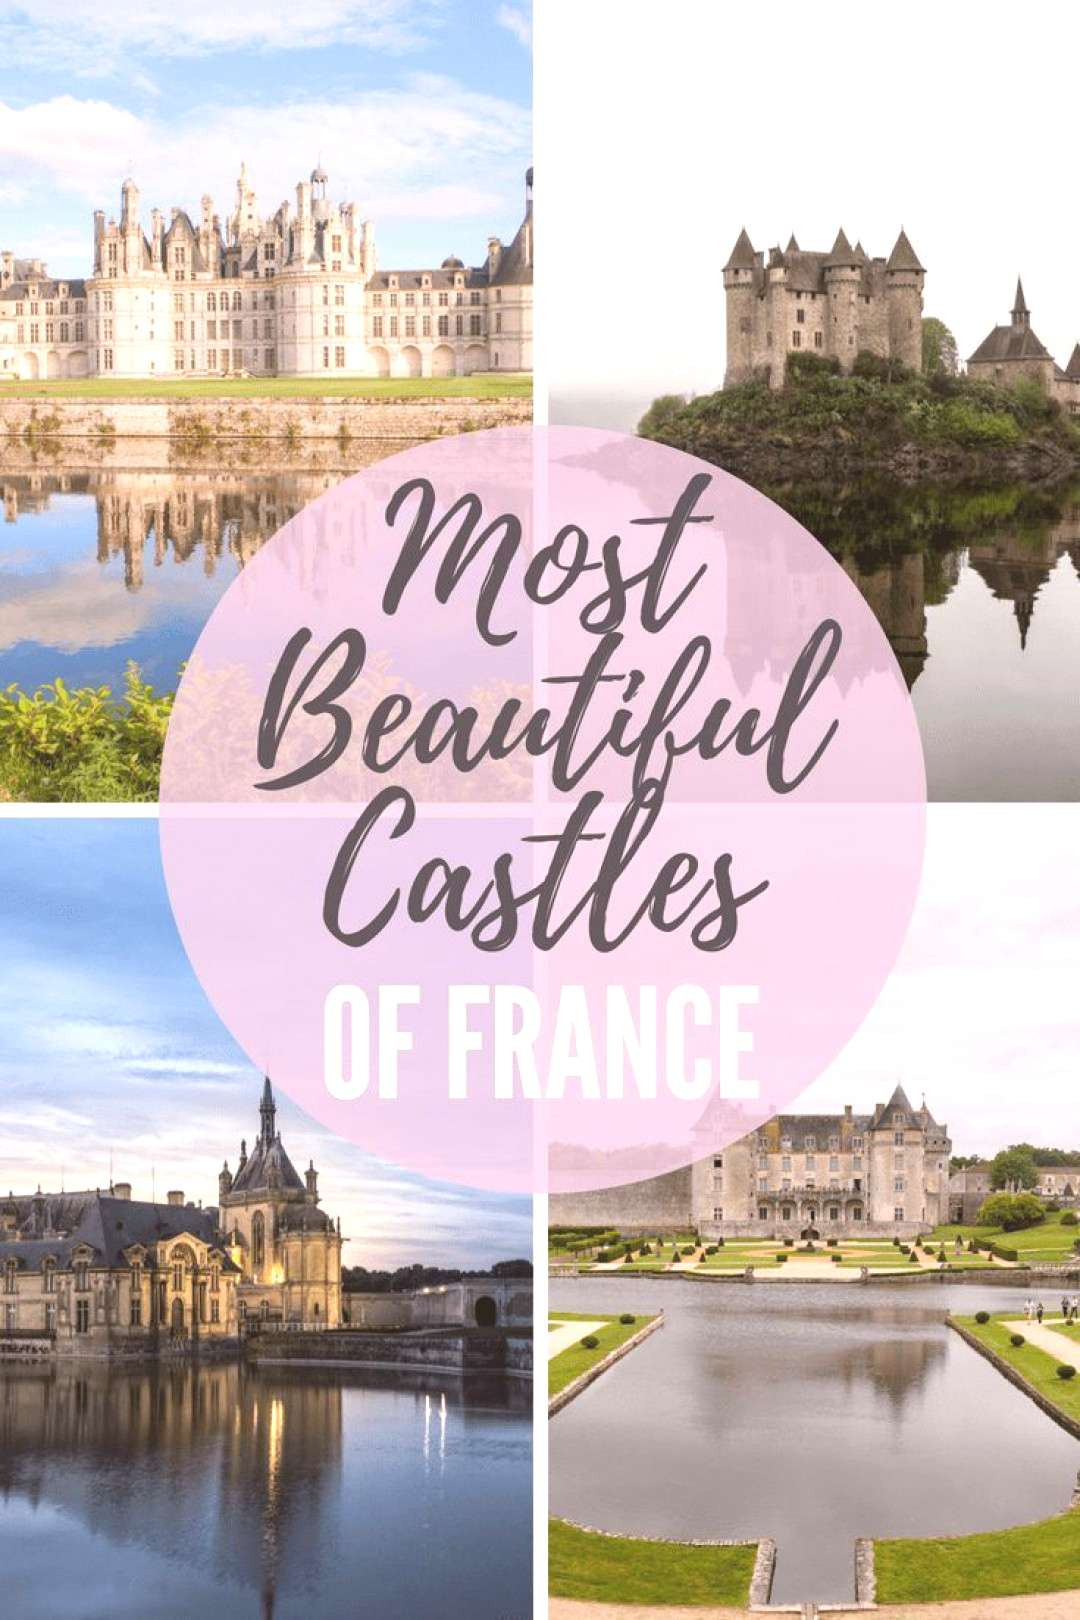 20 Best Castles in France to Visit - France's Most Beautiful Castles France is home to many beautif